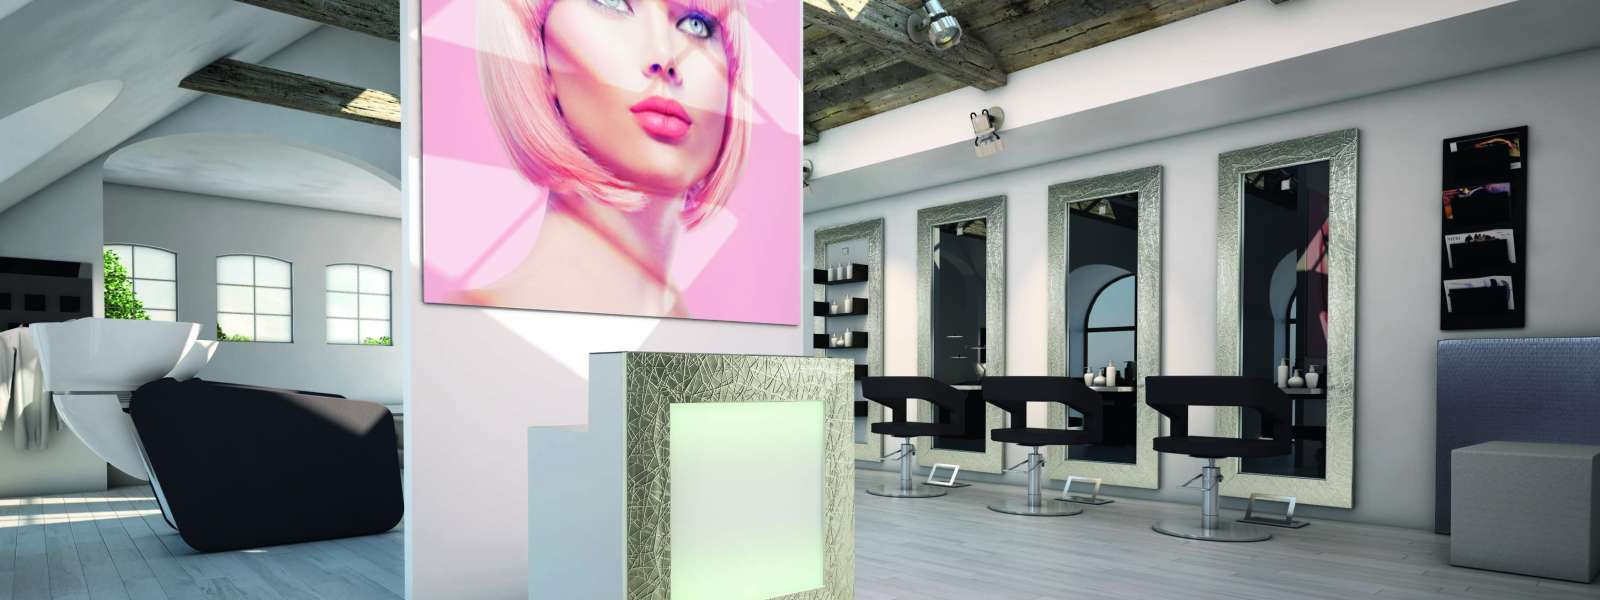 Nelson Mobilier - Fabricant - Mobilier de coiffure Made in France ...